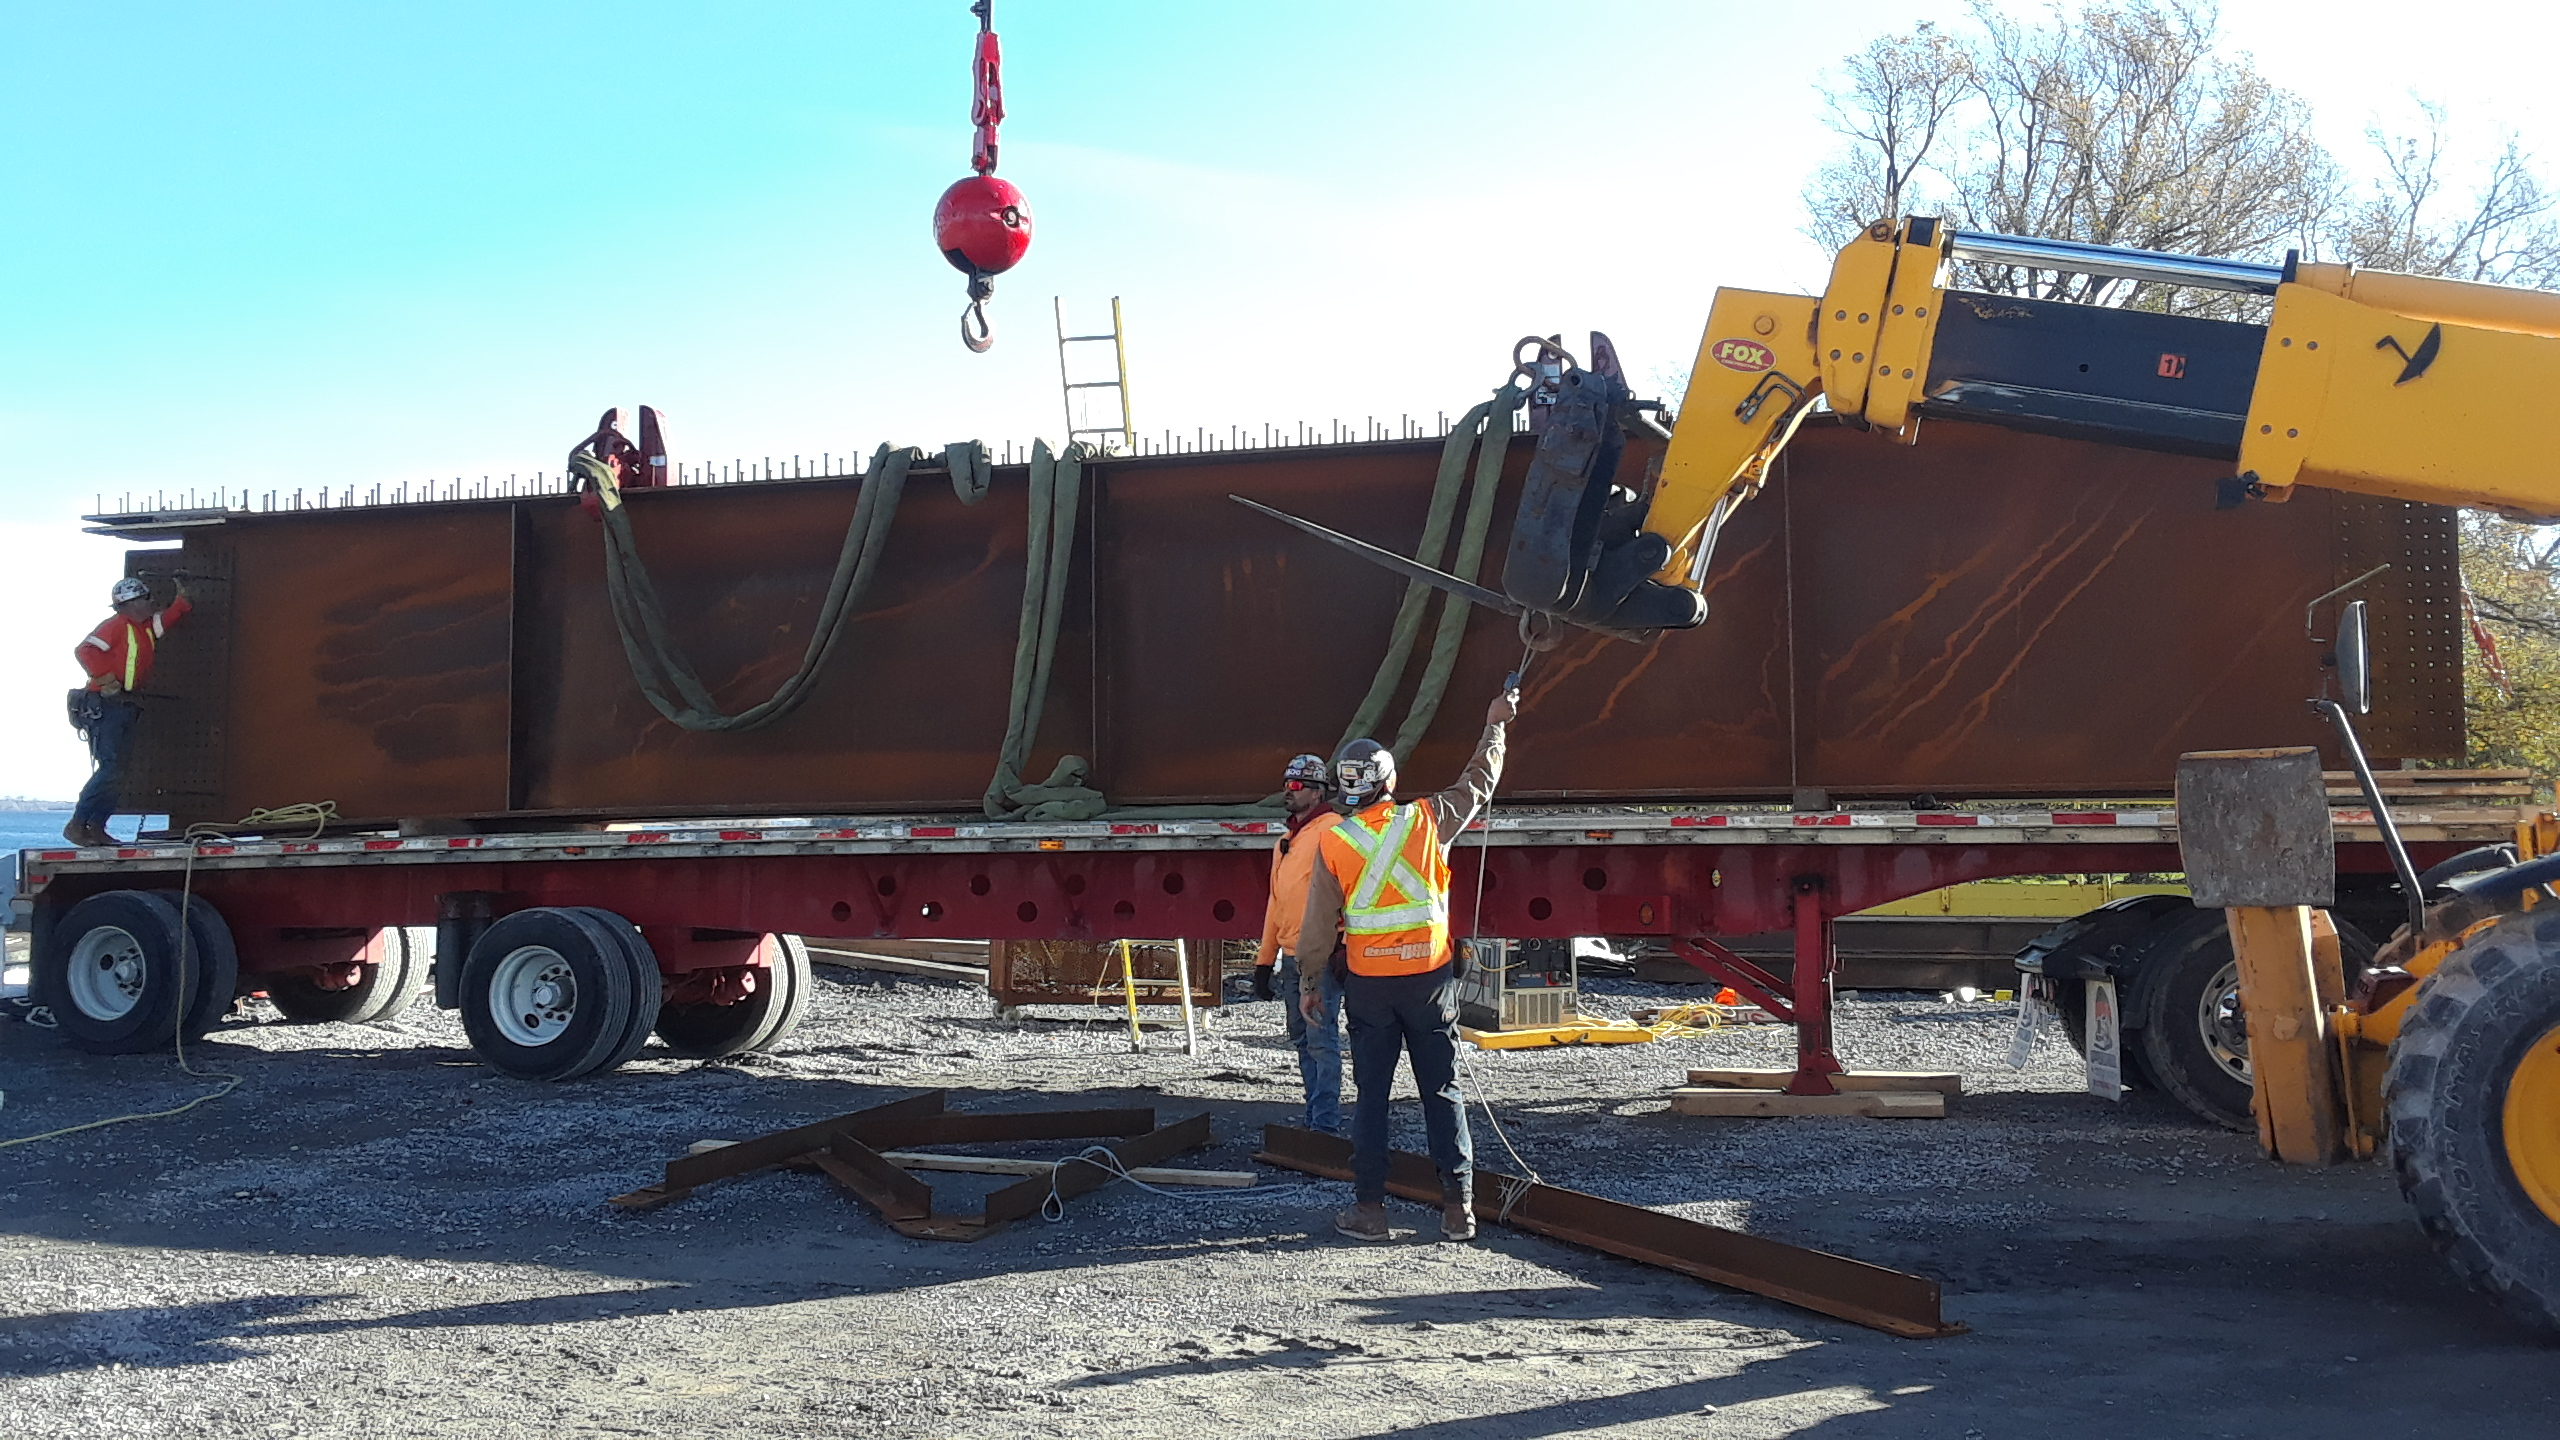 Final section of girder arriving for assembly